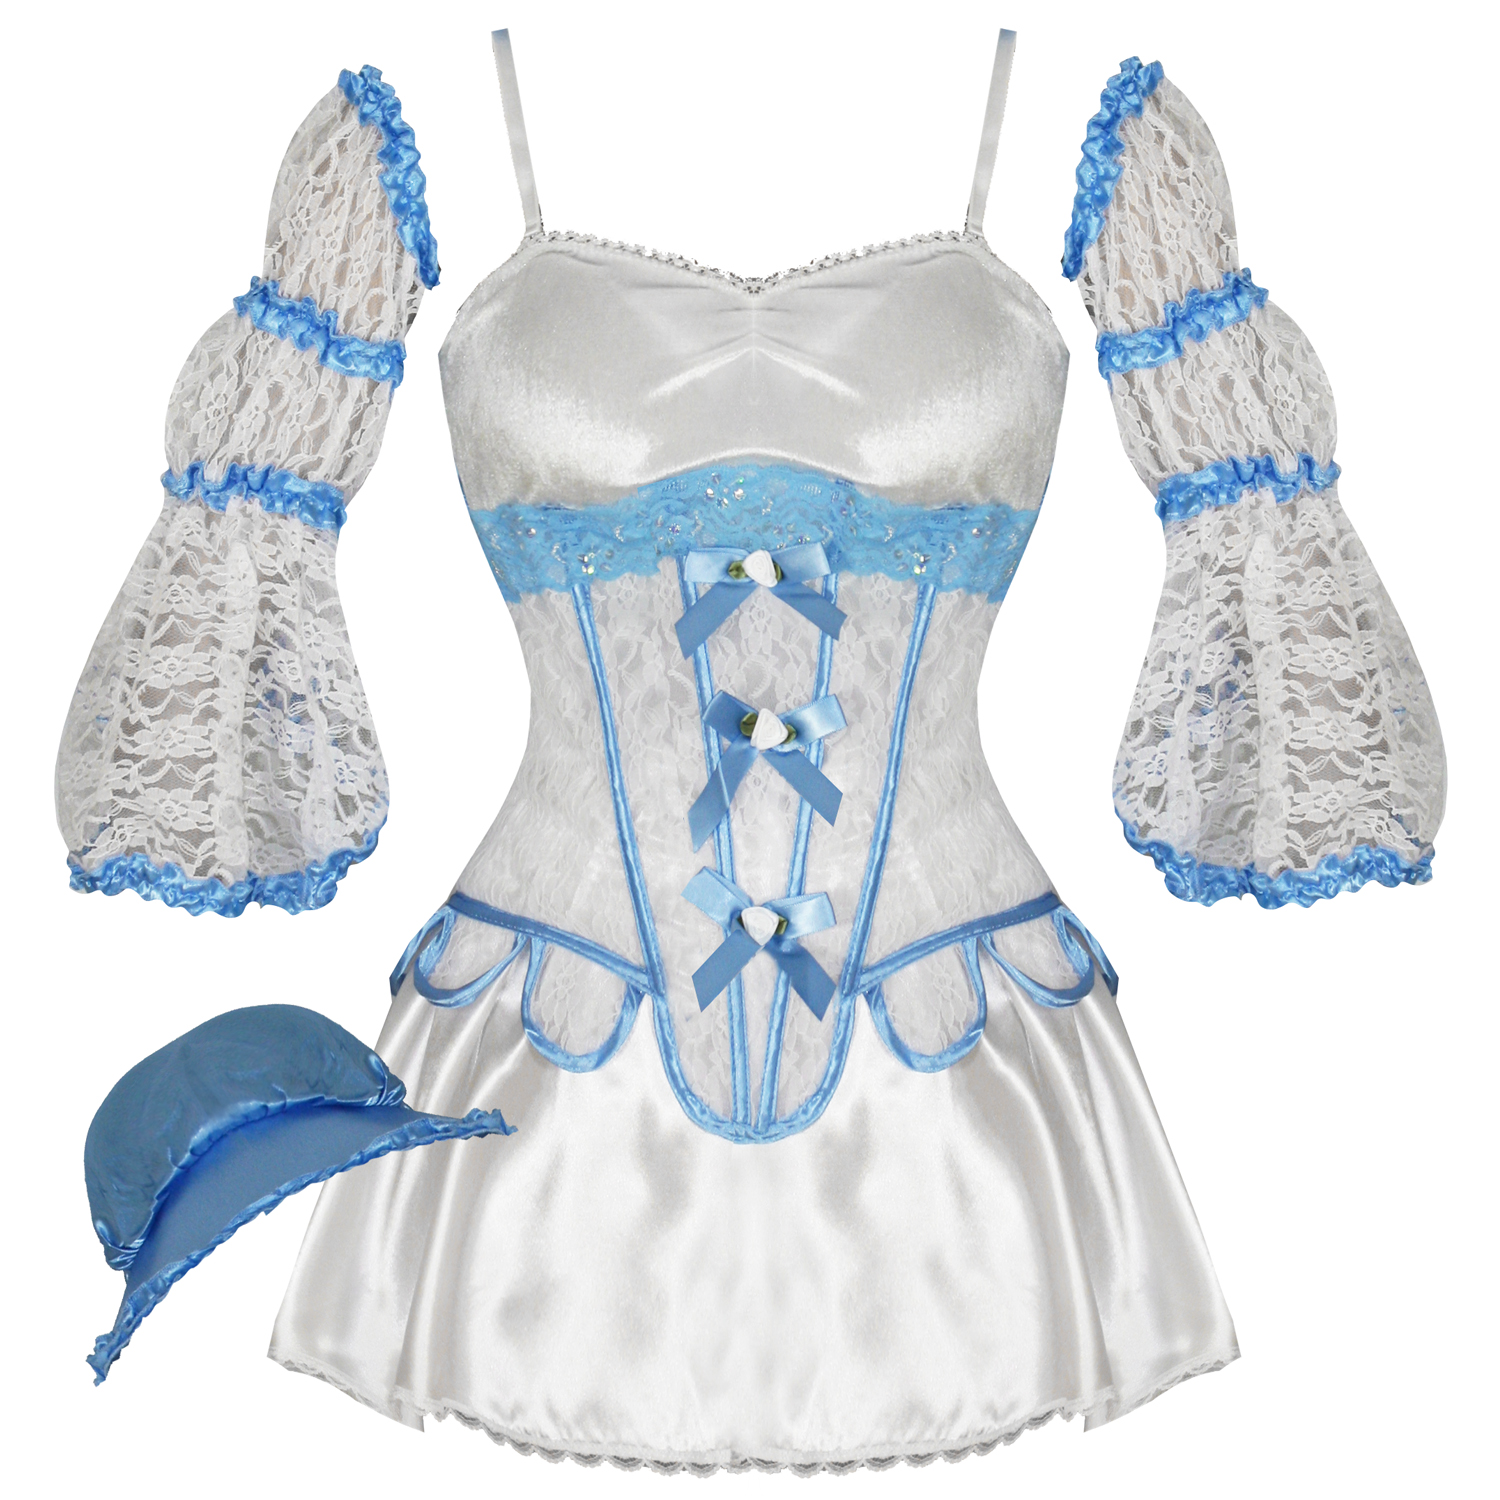 LADIES-NEW-SEXY-WHITE-BLUE-CORSET-LITTLE-BO-PEEP-FANCY-DRESS-OUTFIT-COSTUME